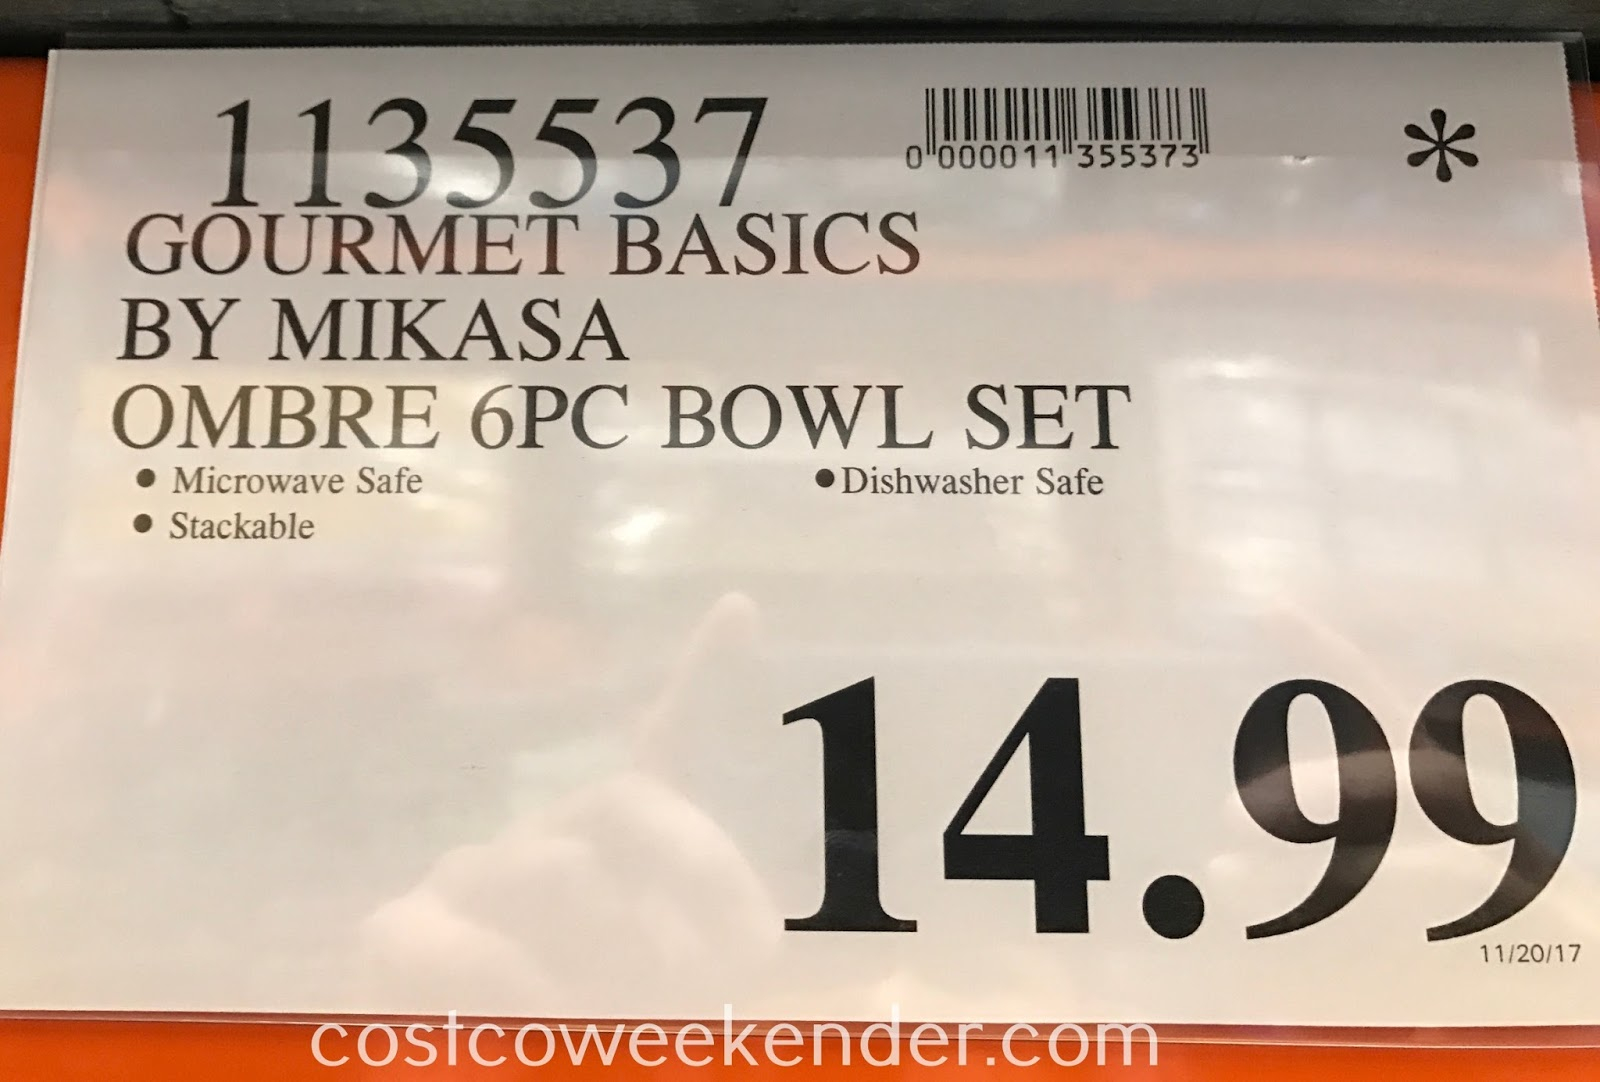 Deal for the Gourmet Basics by Mikasa Ombre 6pc Soup Bowl Set at Costco